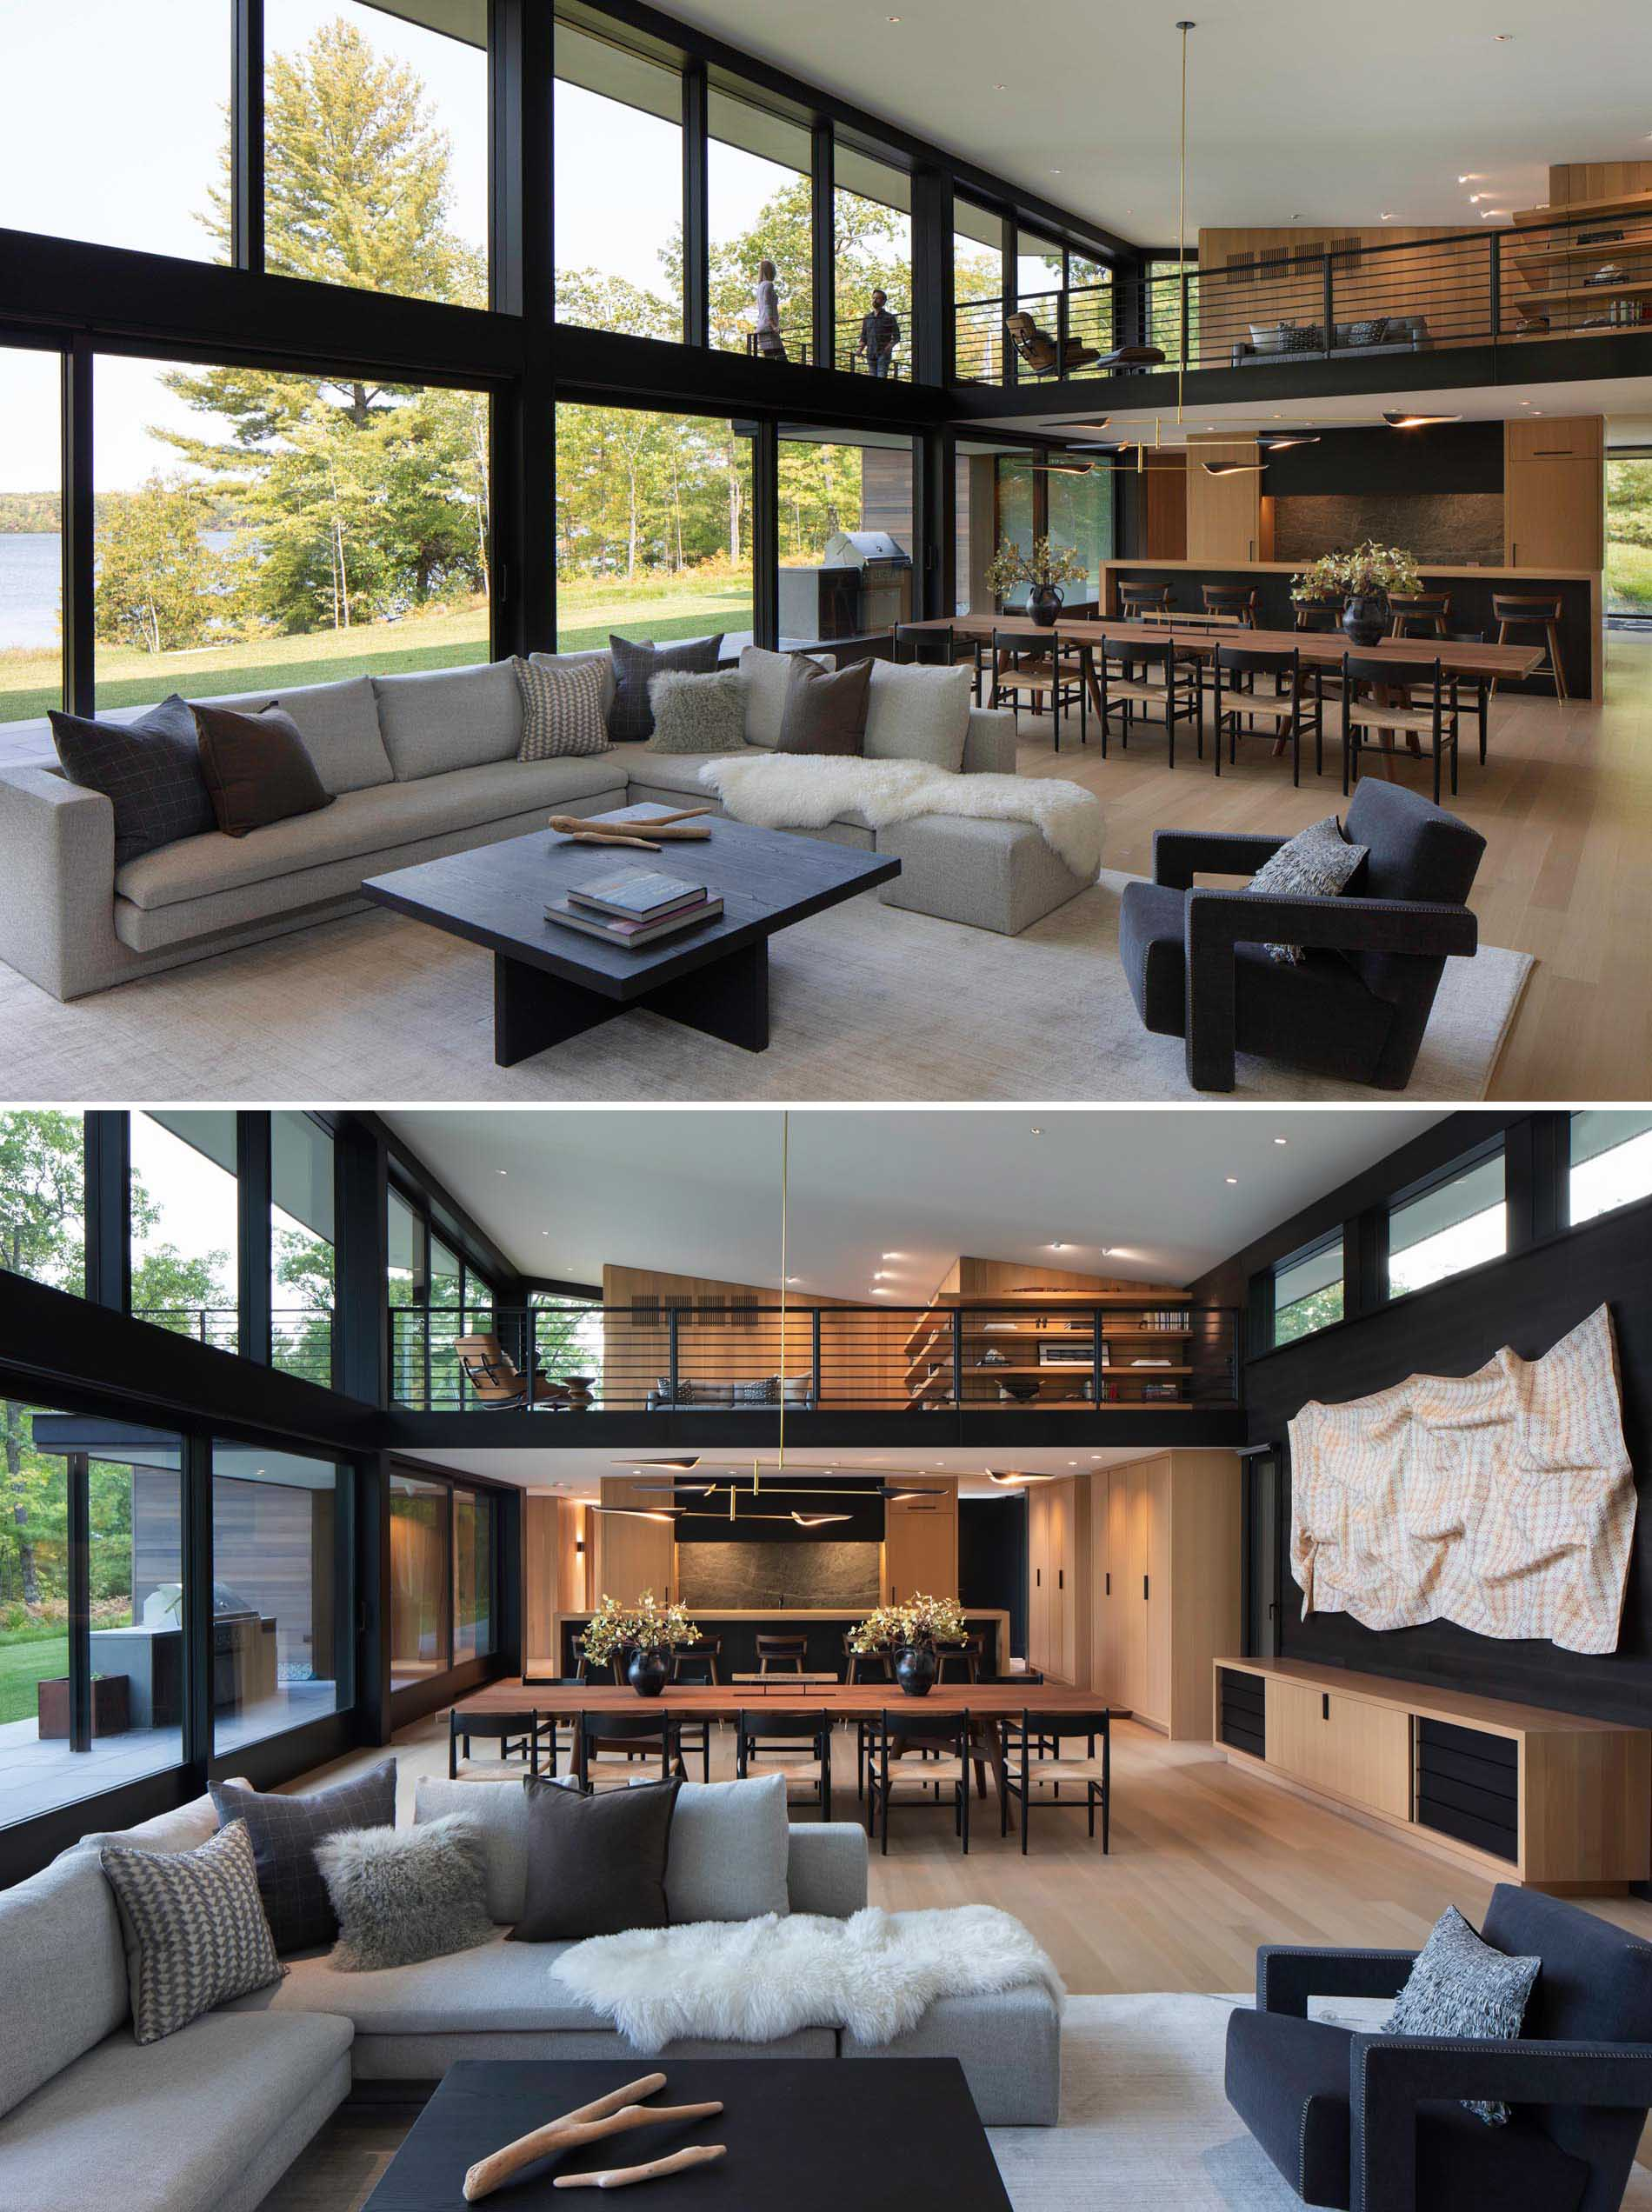 This living room, furnished with an L-shaped gray couch, has a wall of windows and glass doors, with the doors providing access to the patio and outdoor kitchen. There's also a view of the loft which opens up to a balcony.